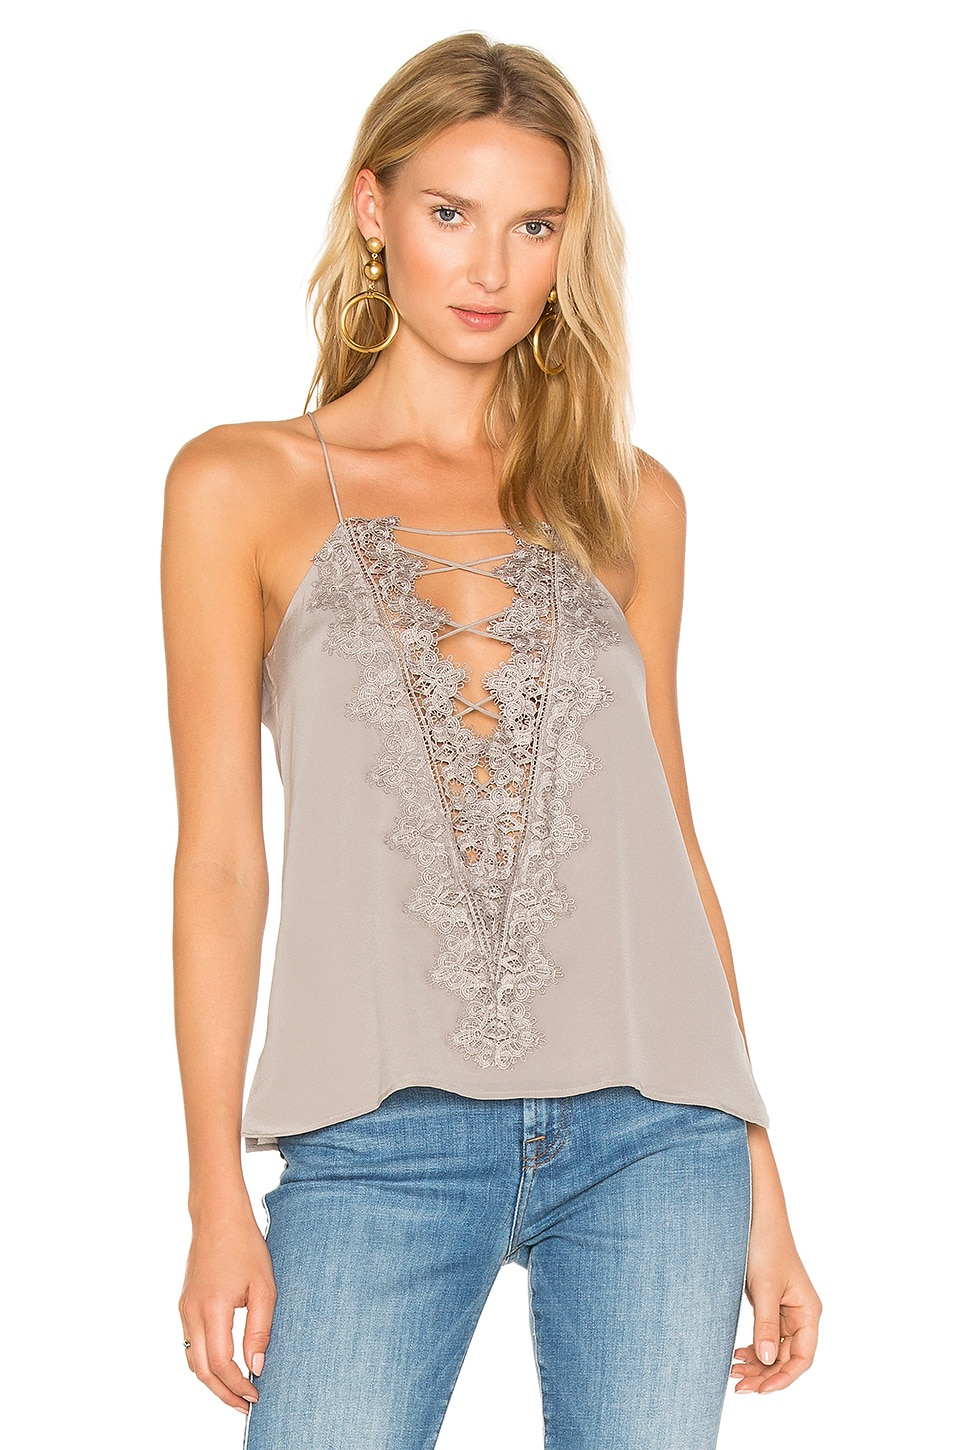 CAMI NYC The Charlie Cami in Grey